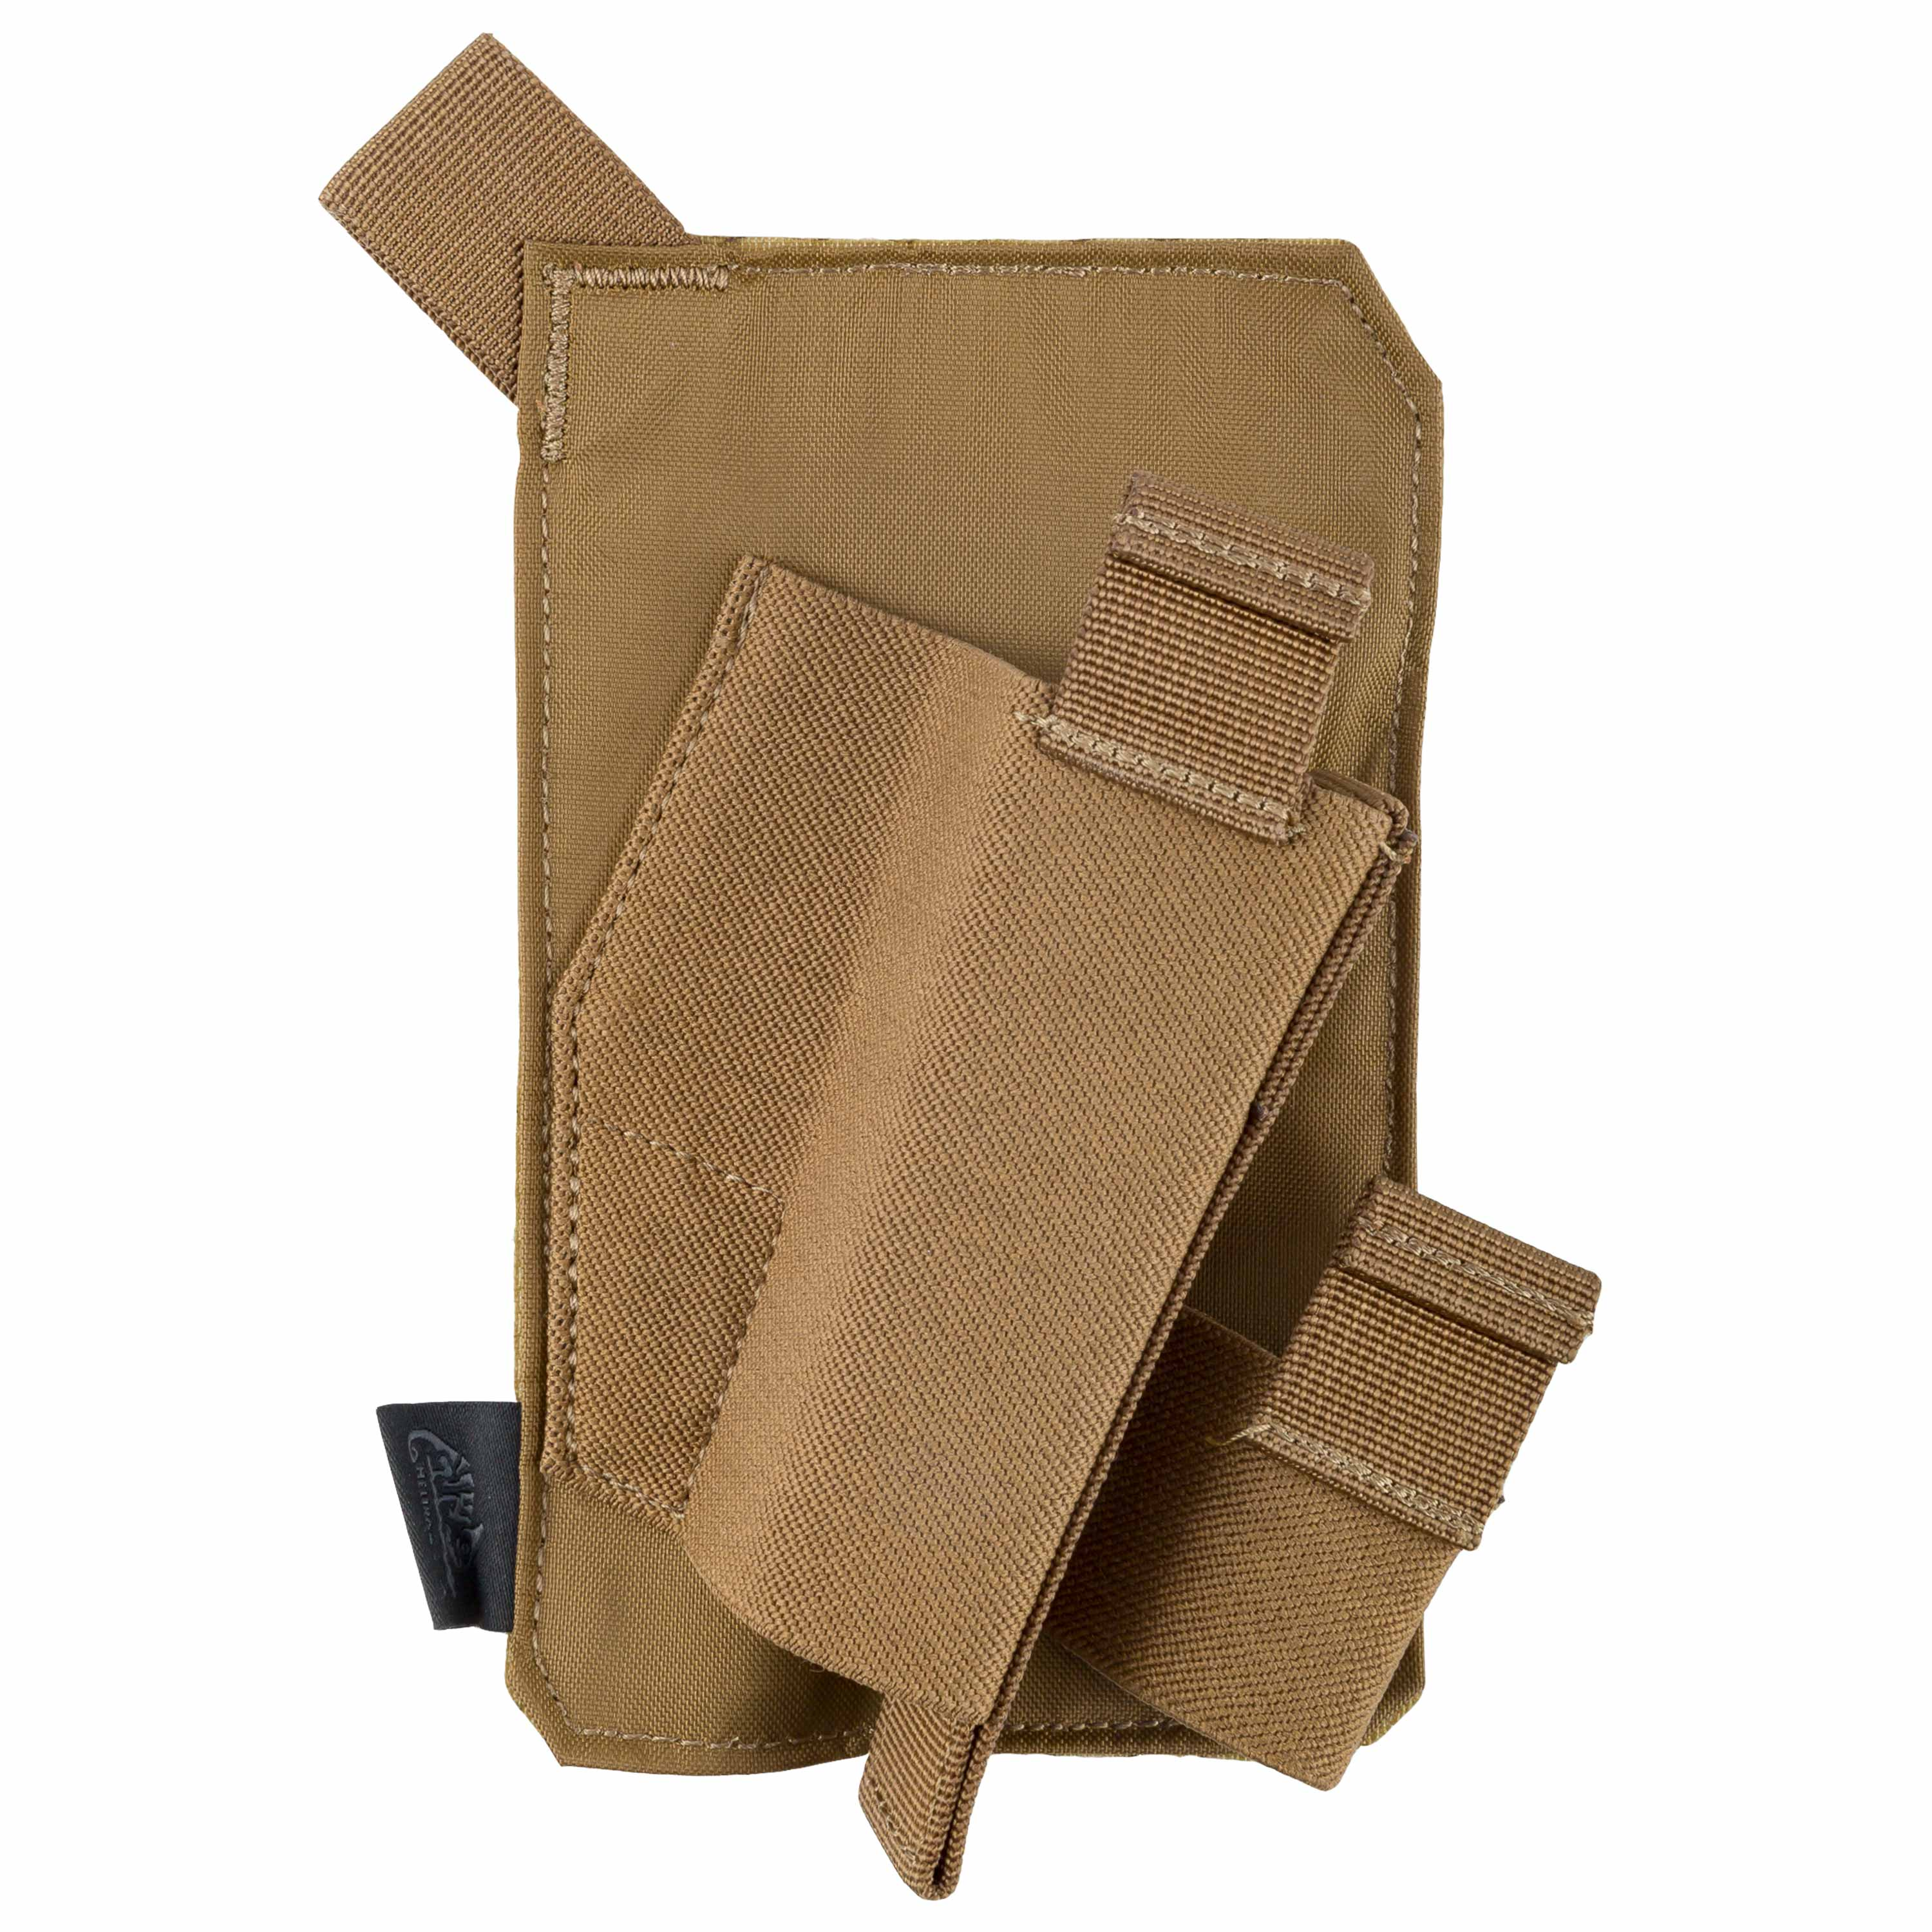 Helikon-Tex Double Magazine Pouch Insert coyote